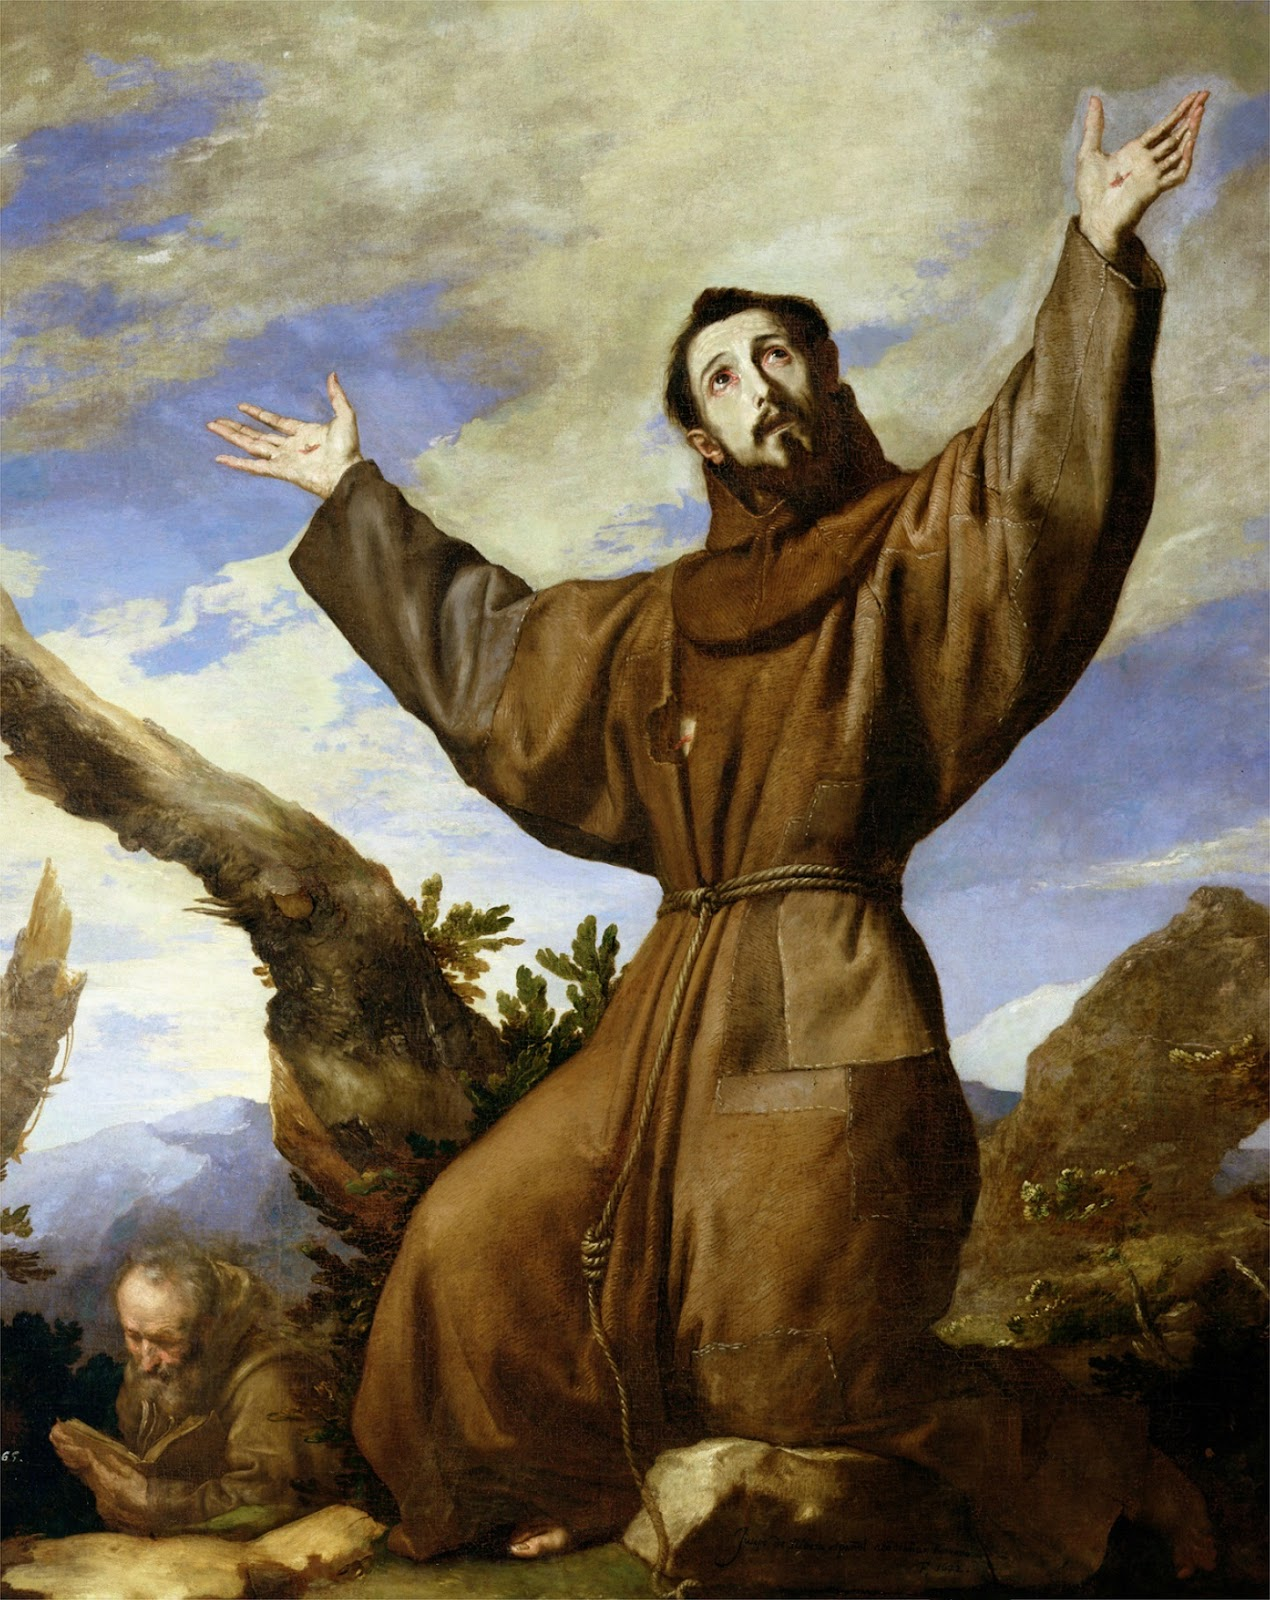 Saint Francis of Assisi in